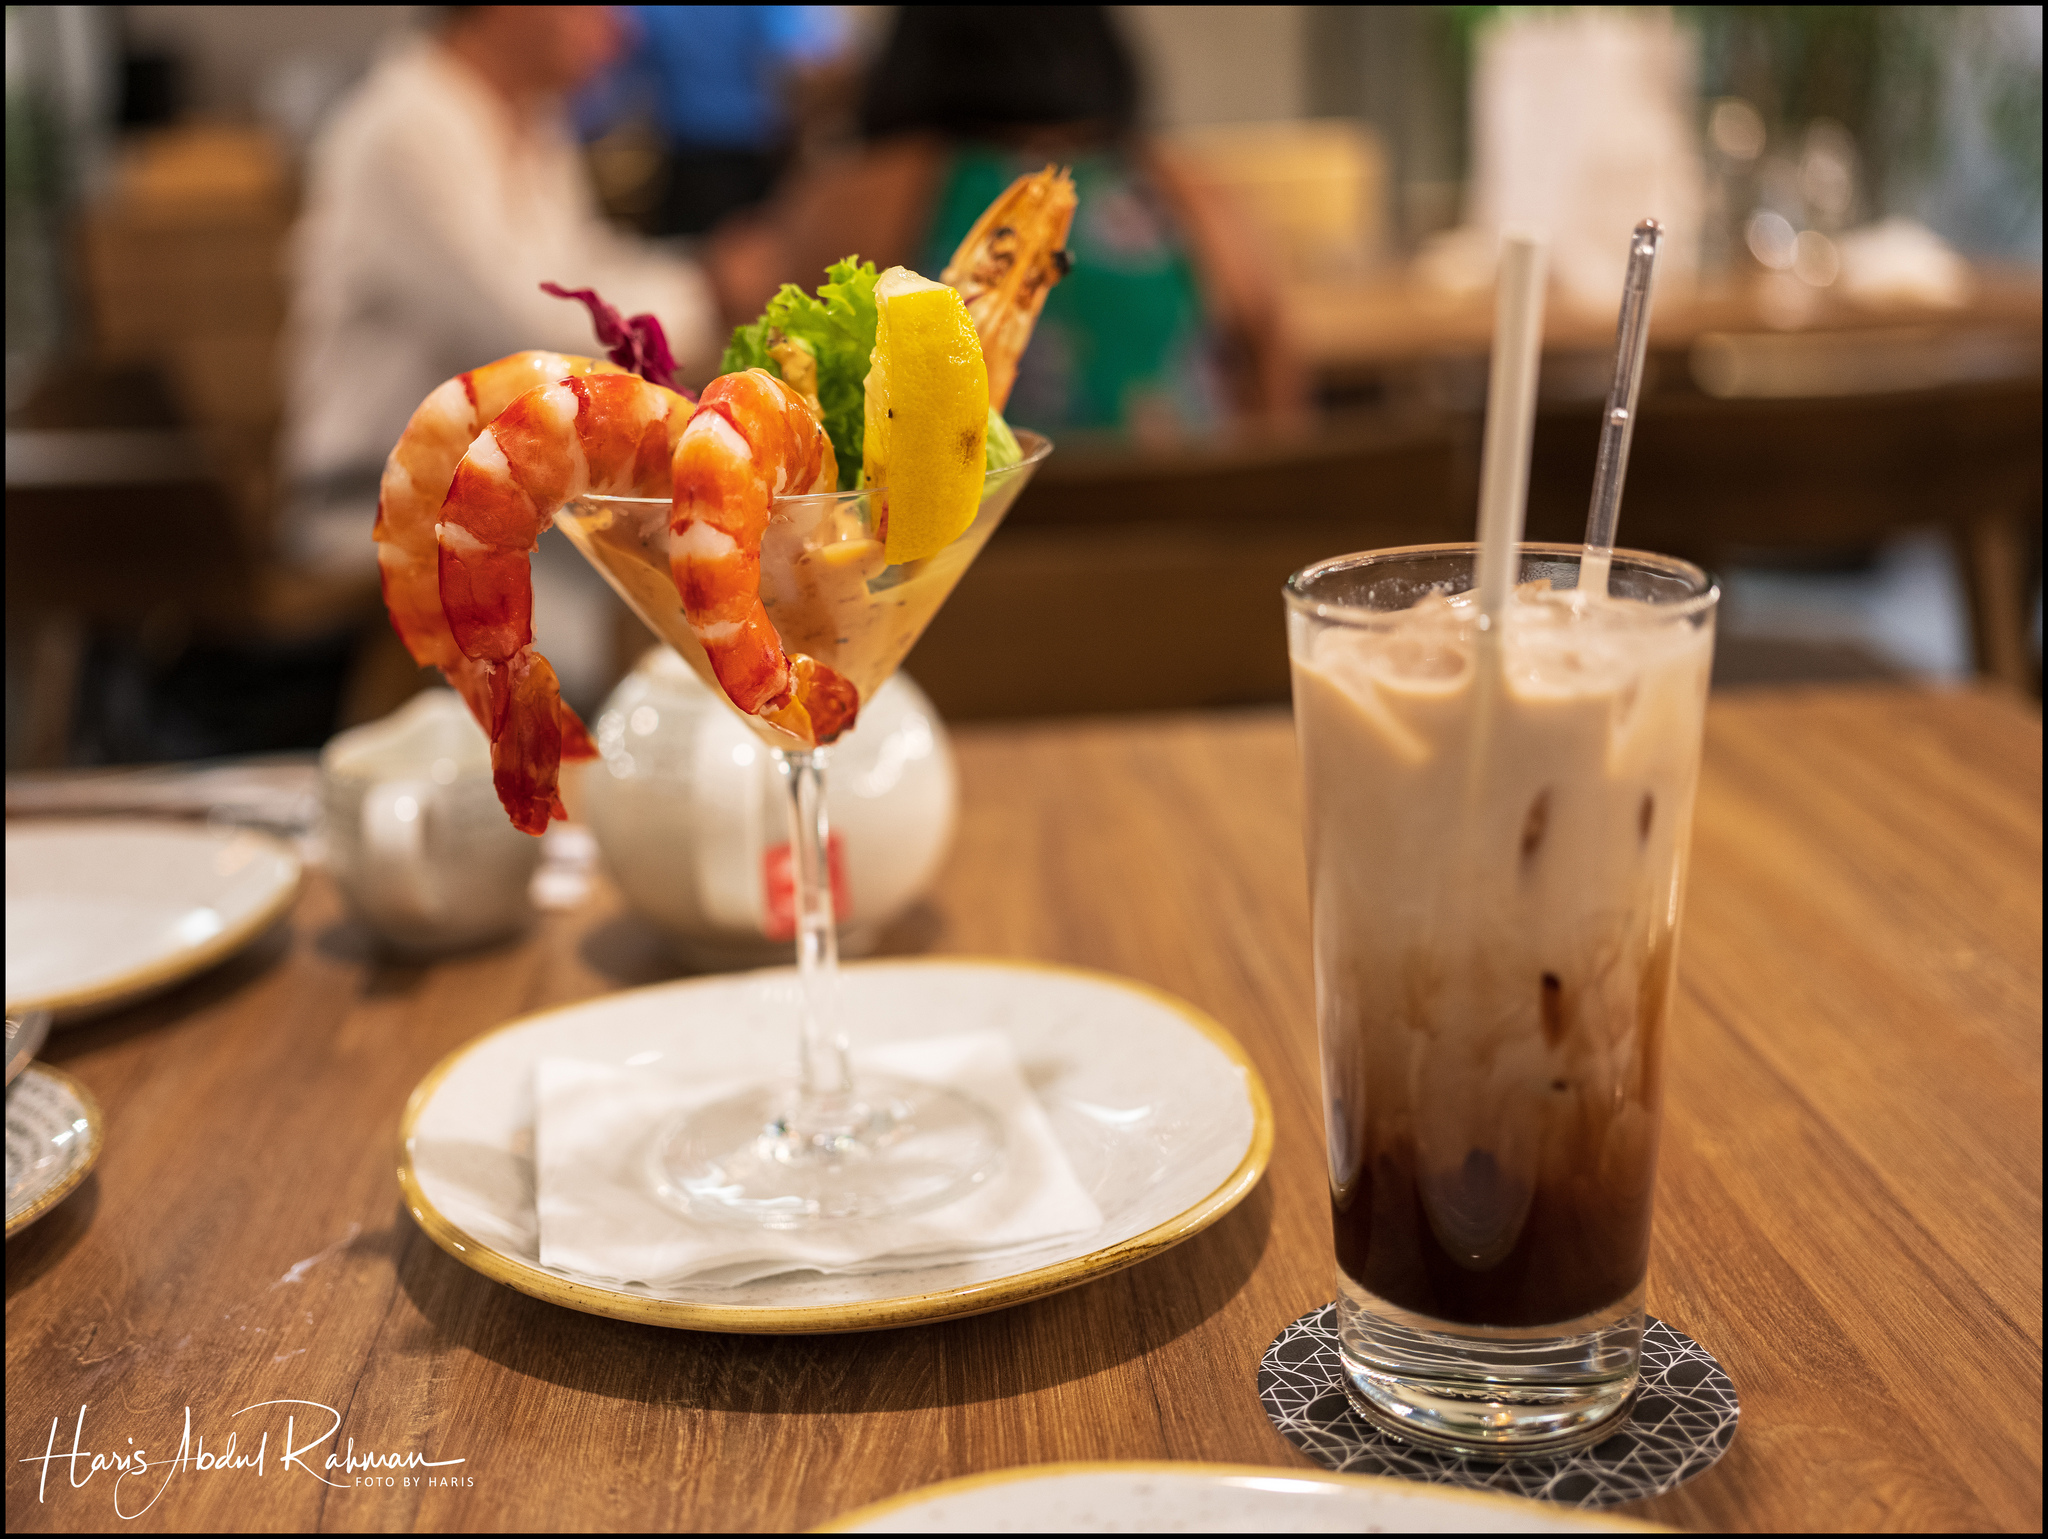 Prawn cocktail and mocha